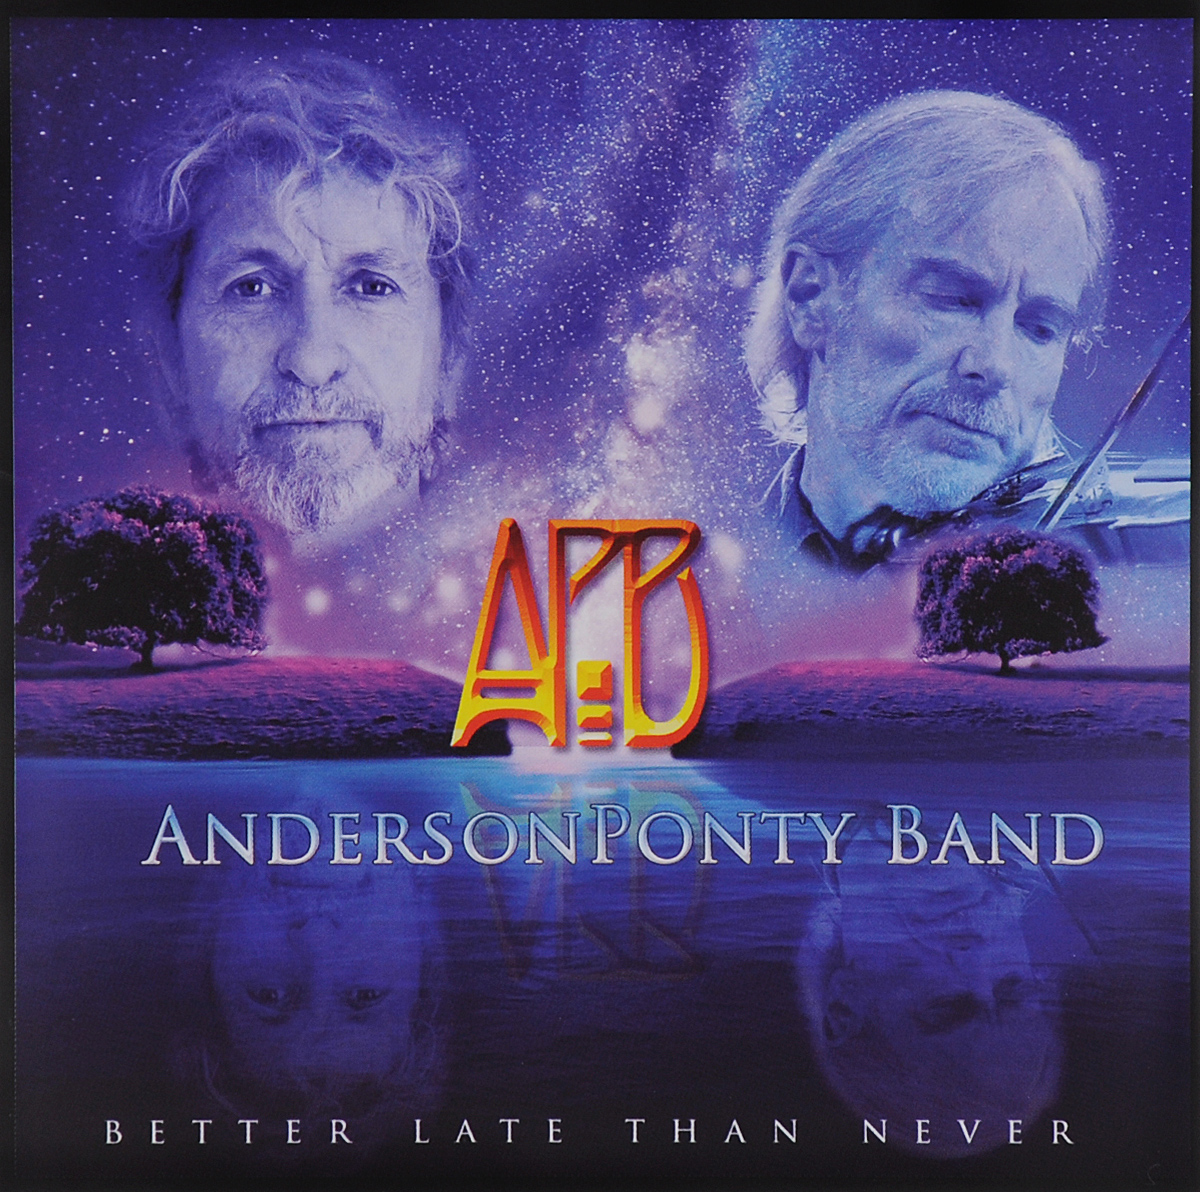 AndersonPonty Band AndersonPonty Band. Better Late Than Never